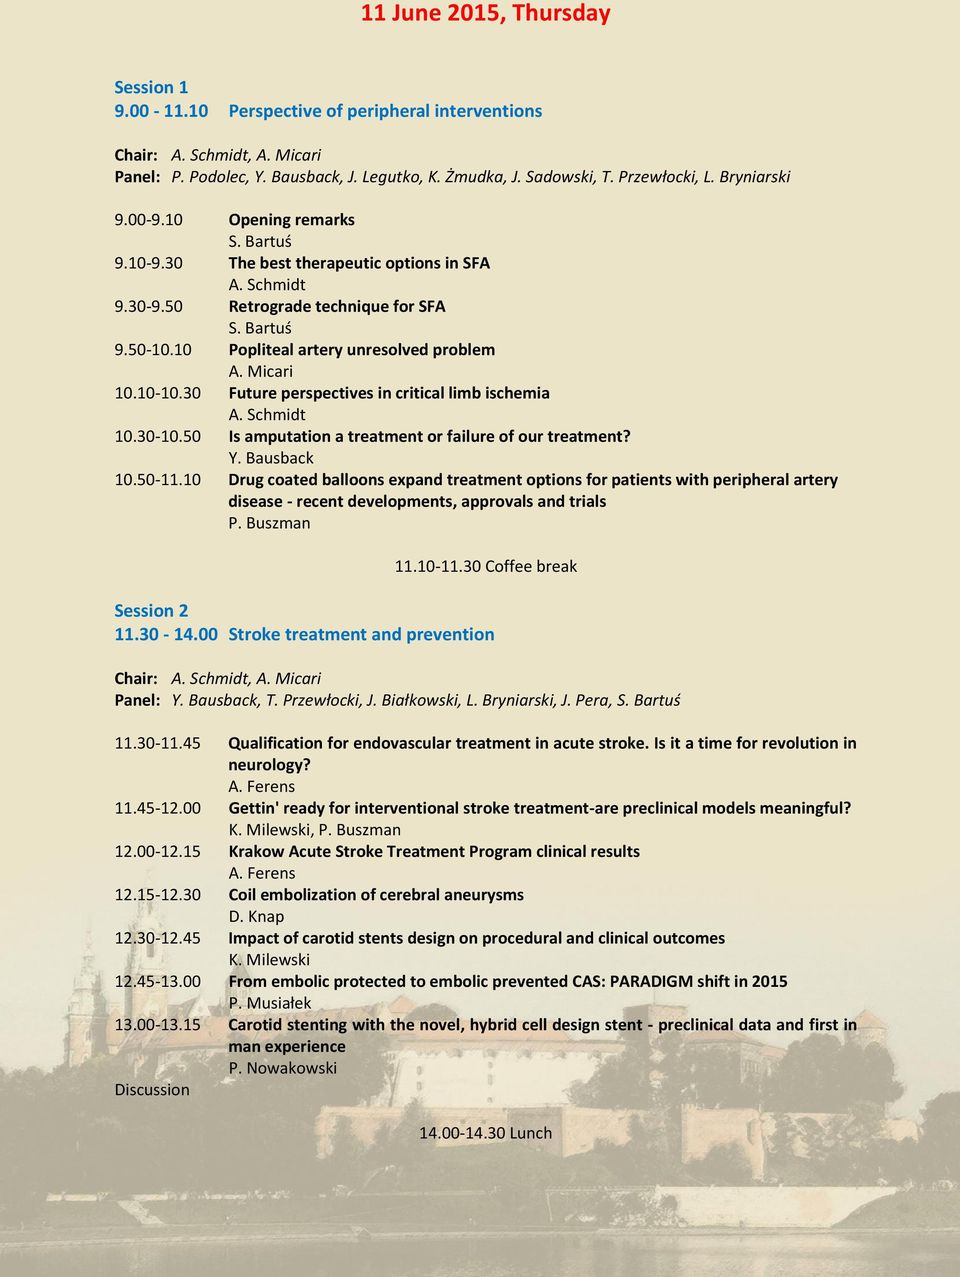 10 Popliteal artery unresolved problem A. Micari 10.10-10.30 Future perspectives in critical limb ischemia A. Schmidt 10.30-10.50 Is amputation a treatment or failure of our treatment? Y. Bausback 10.